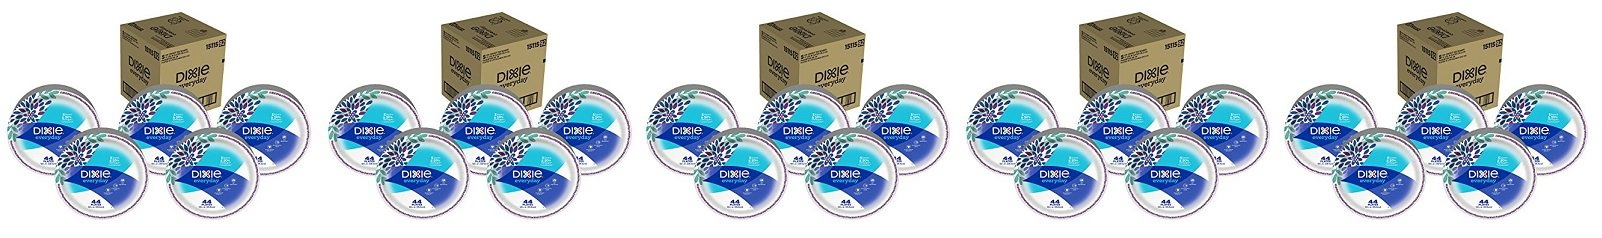 Dixie Everyday Disposable Paper Plates, 10 1/16 Inch Plates, 220 Count (5 Packs of 44 Plates); Designs May Vary (5 BOXES OF 5 PACK) by Dixie